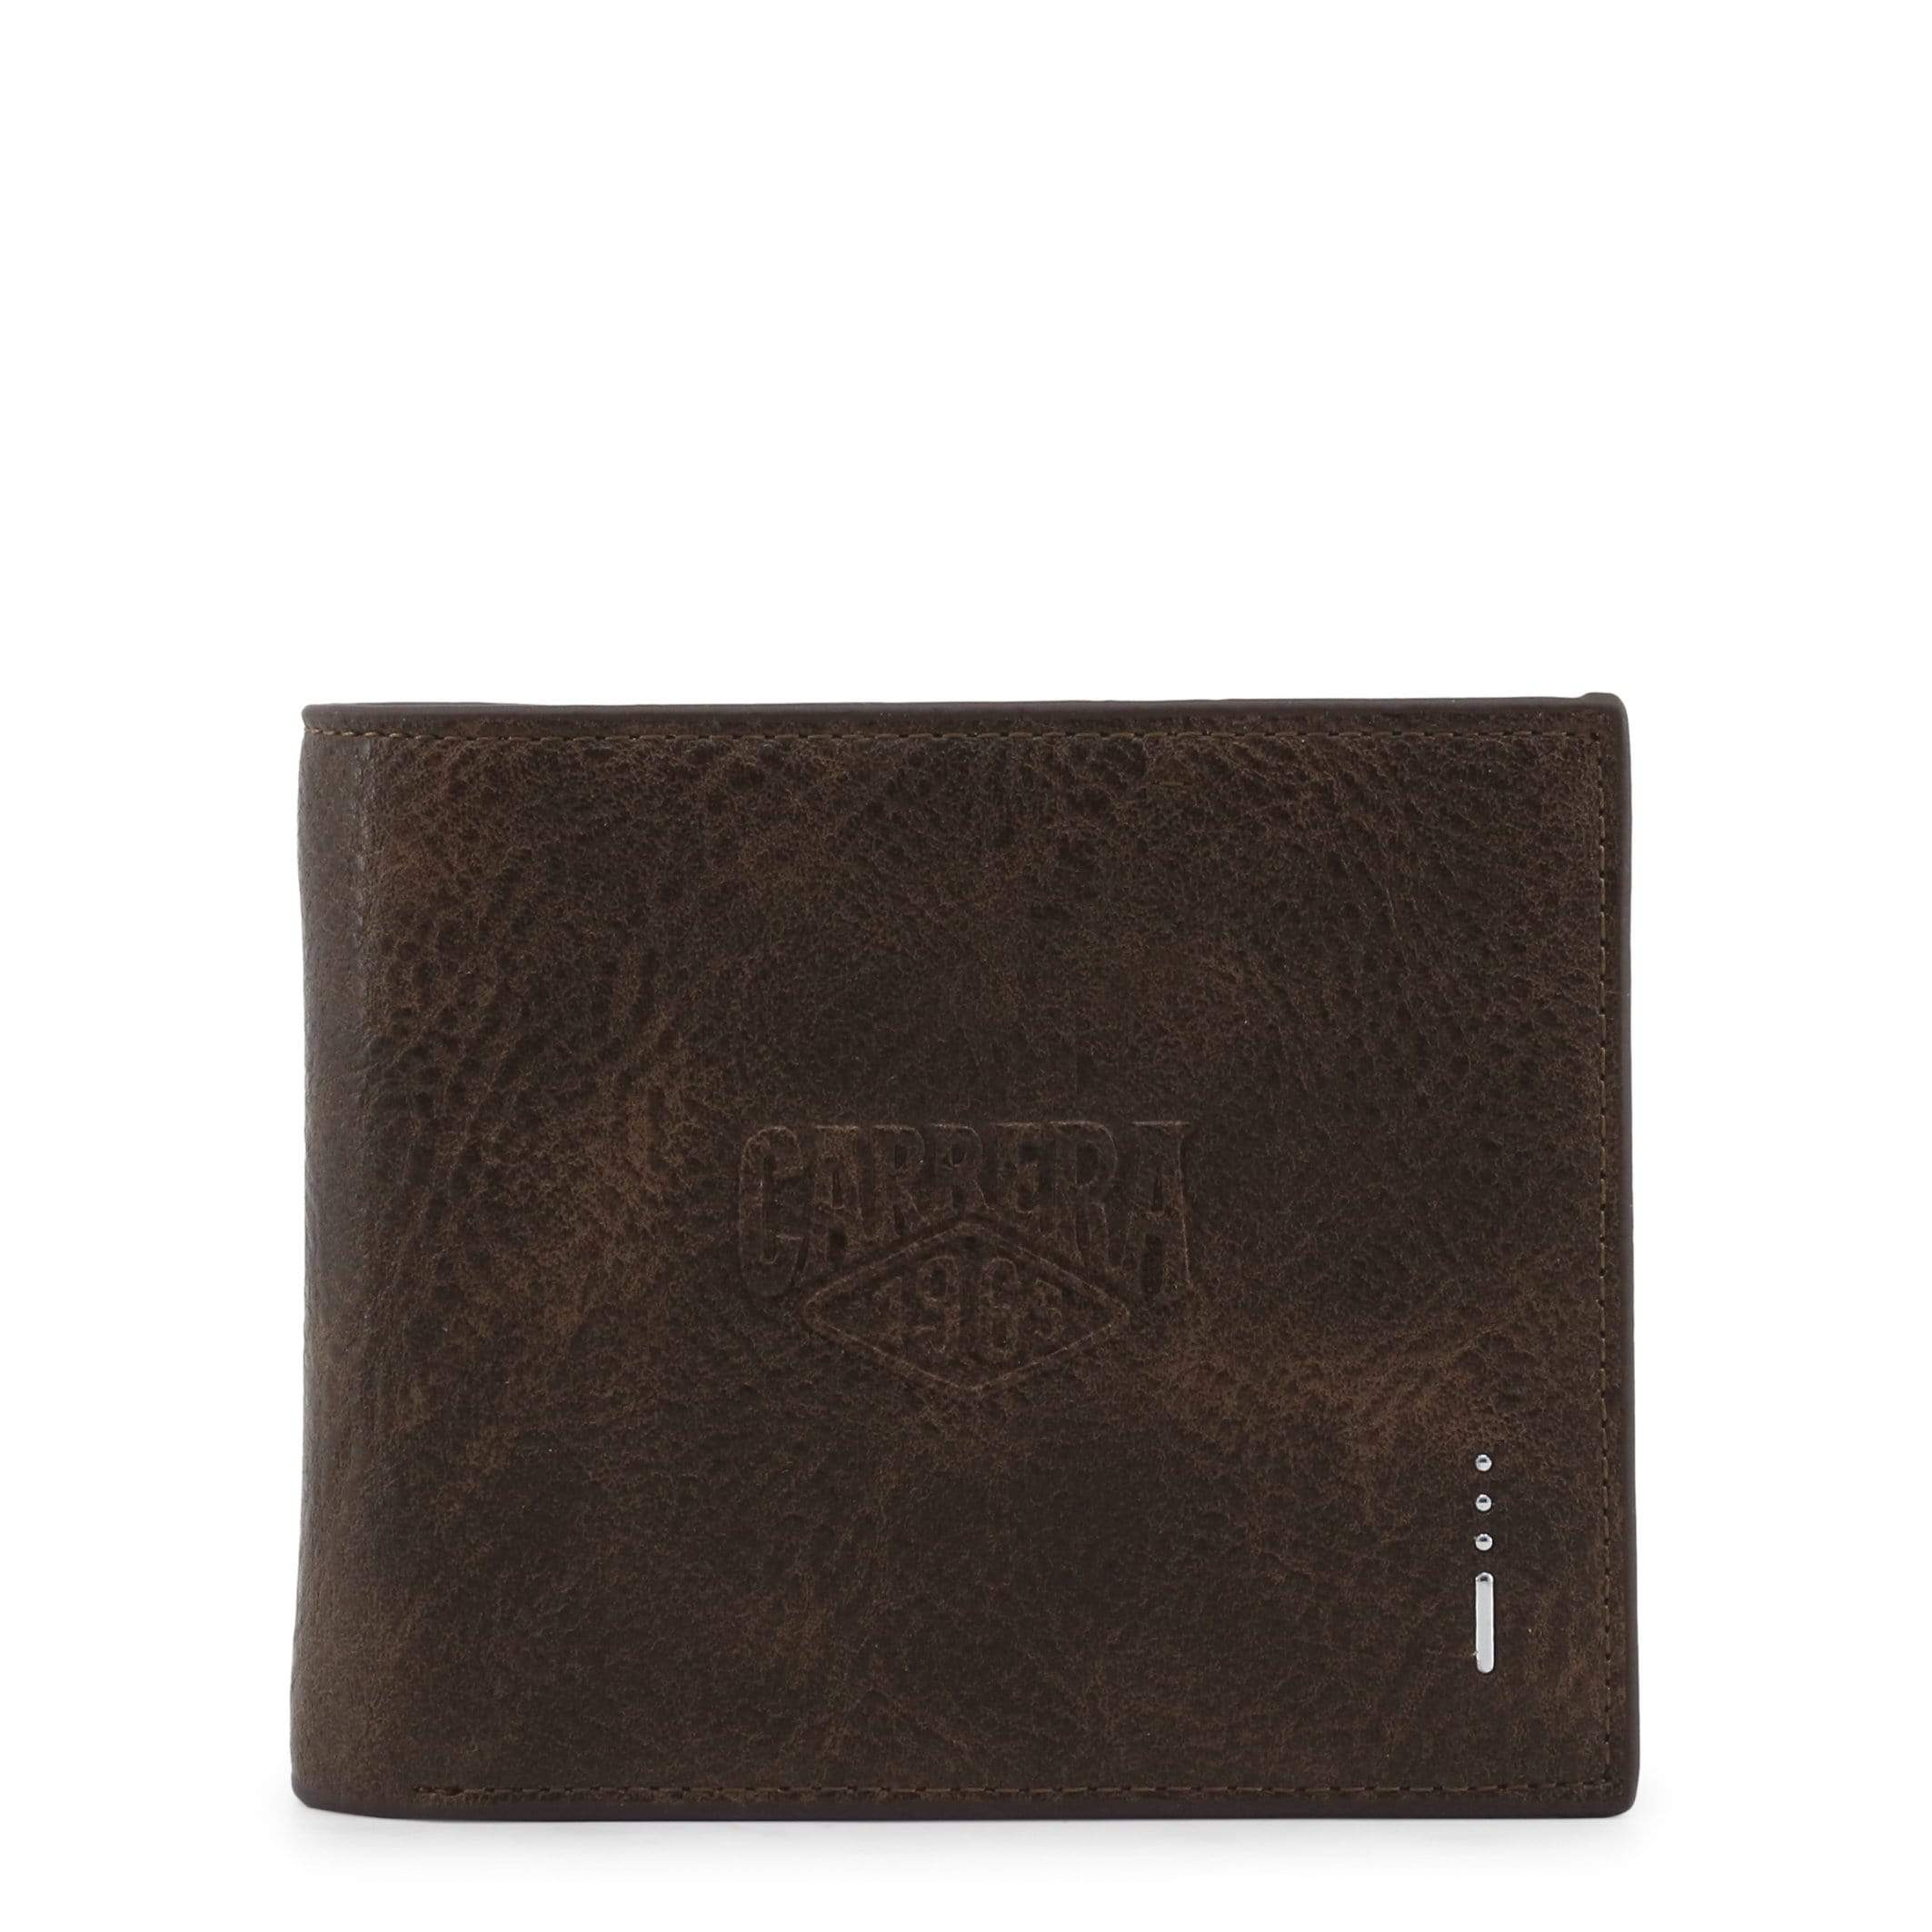 Carrera Jeans Accessories Wallets brown / NOSIZE Carrera Jeans - CB622